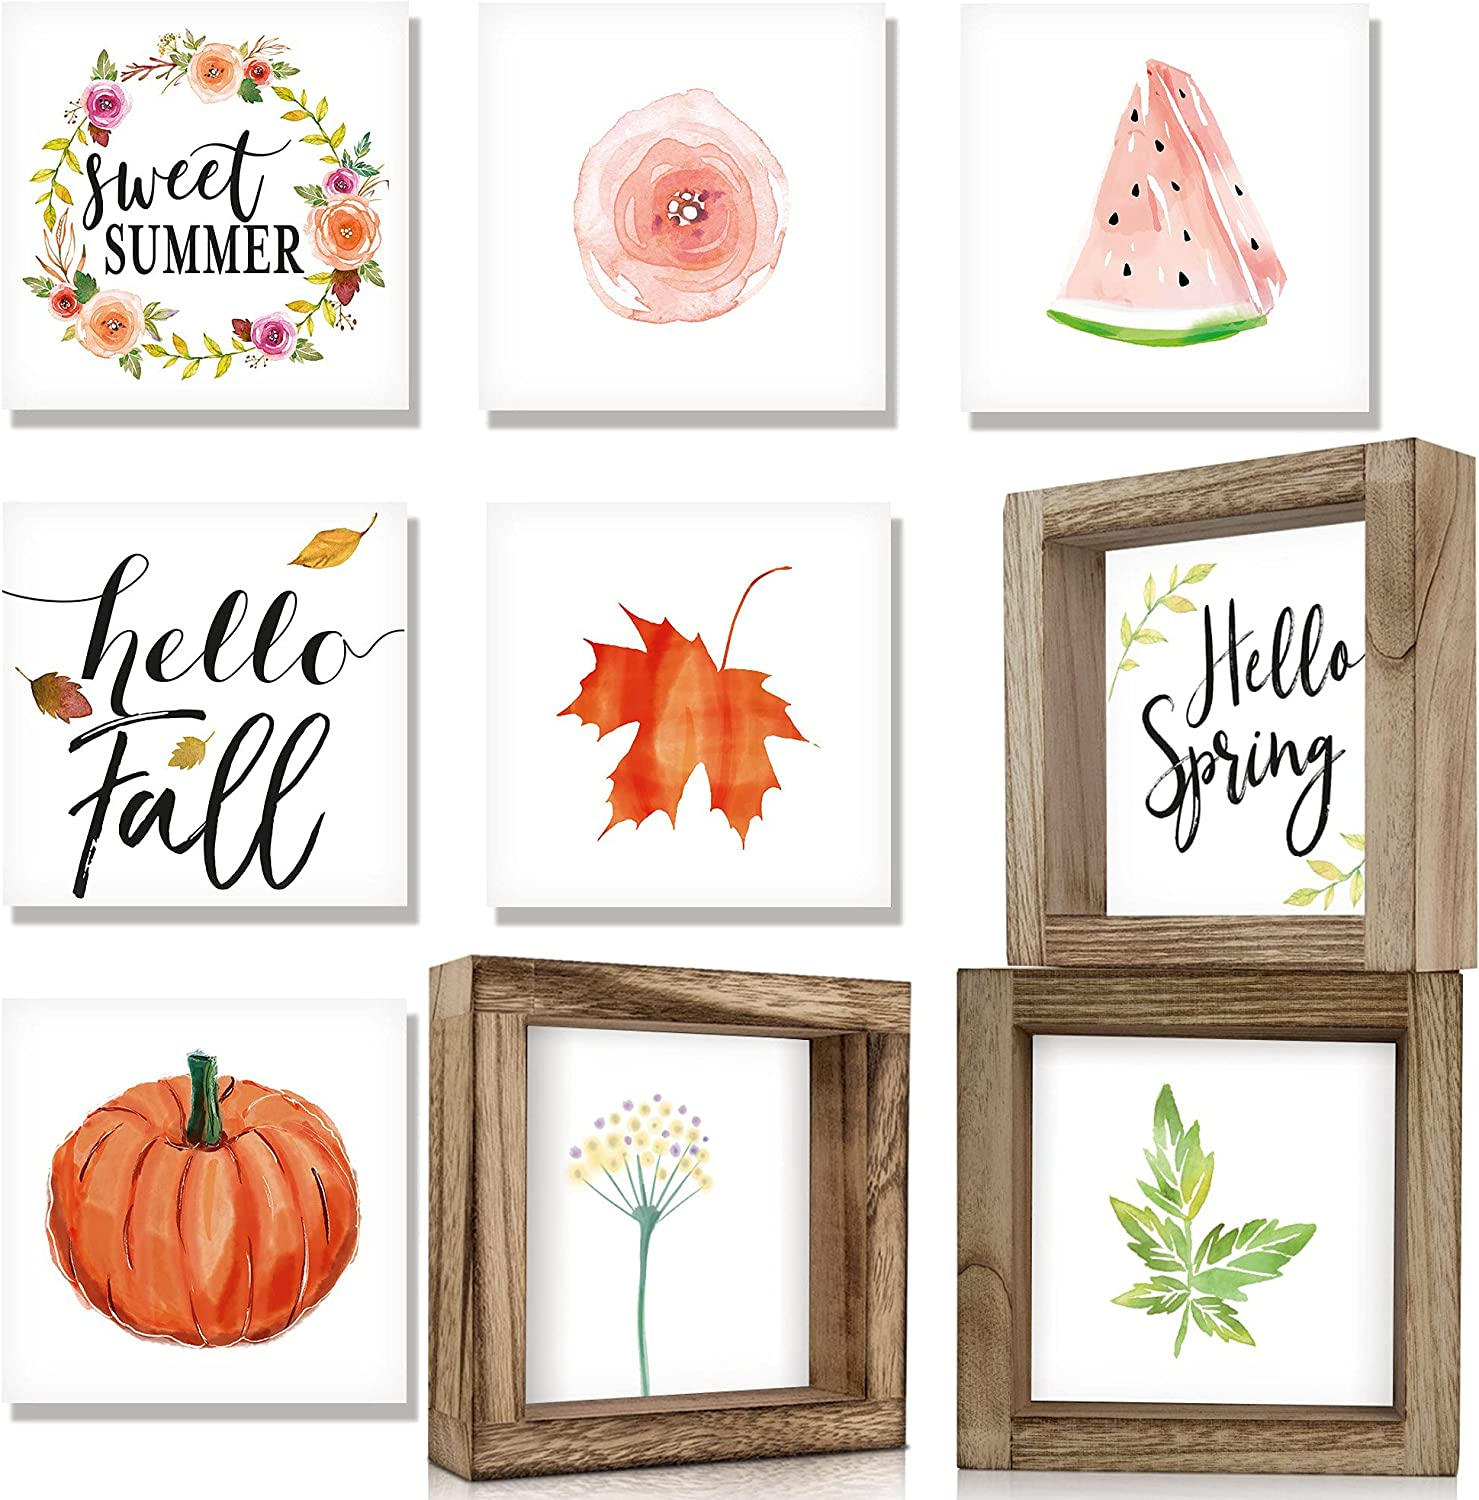 KIBAGA Farmhouse Home Decor Signs - Set of 3 Frames with 18 Interchangeable Sayings for Spring Decoration - Rustic 6